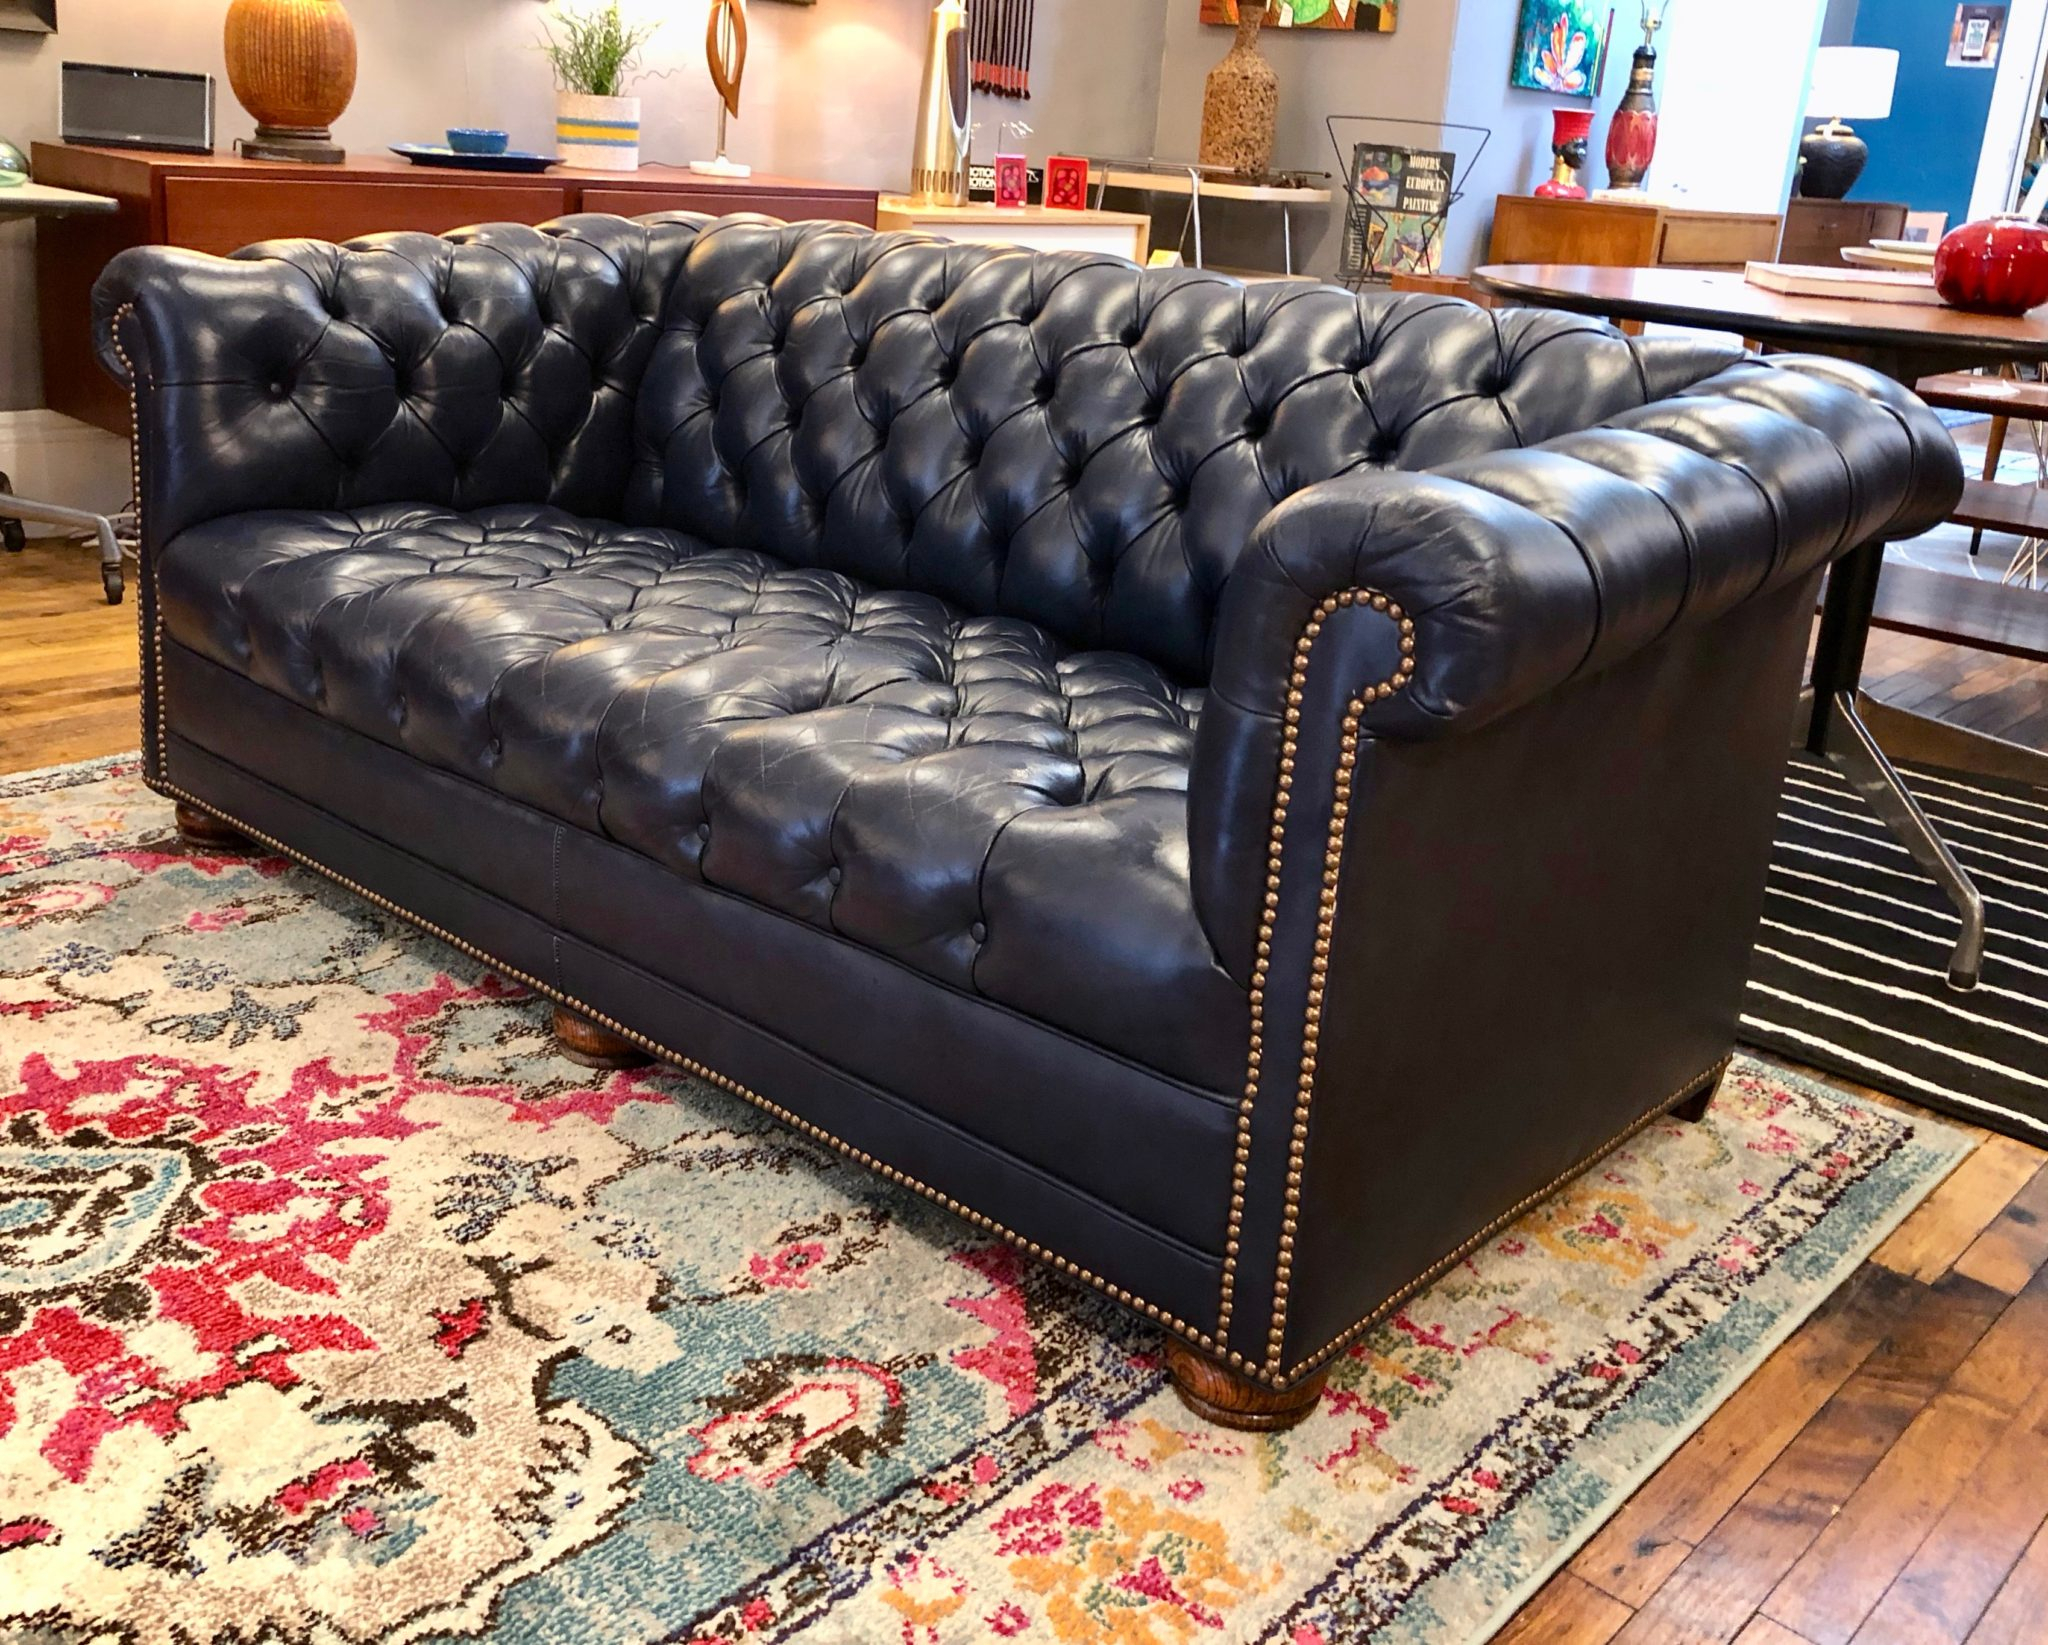 Vintage Chesterfield Sofa In Navy Blue 66″L | Circa With Regard To Vintage Chesterfield Sofas (View 6 of 15)